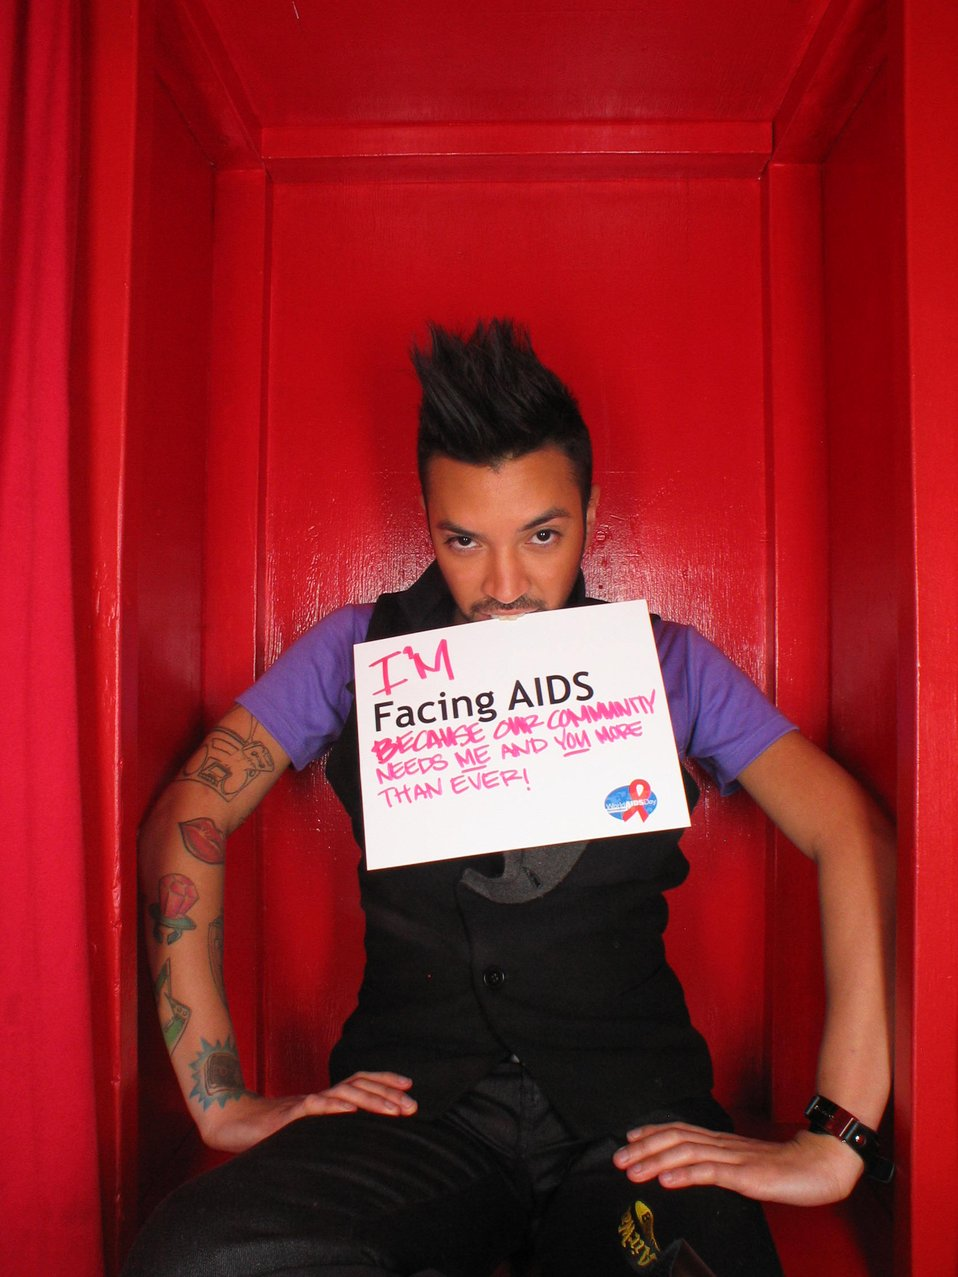 I'm Facing AIDS because our community needs and and you more than ever!